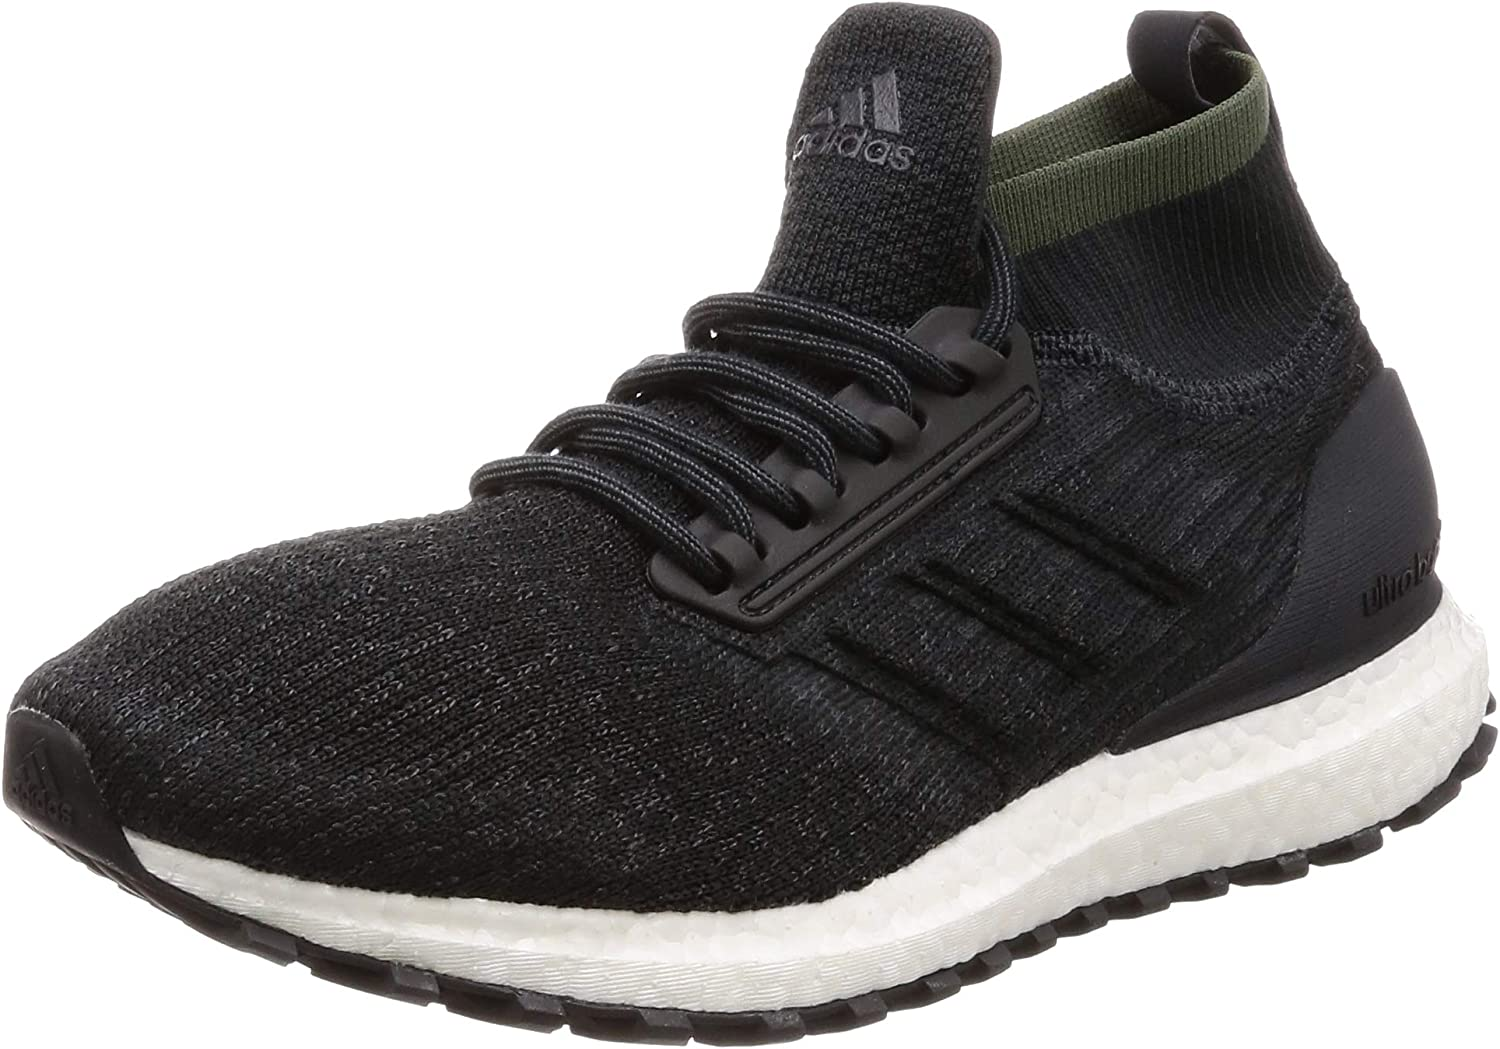 Adidas Ultraboost All Terrain - AW18